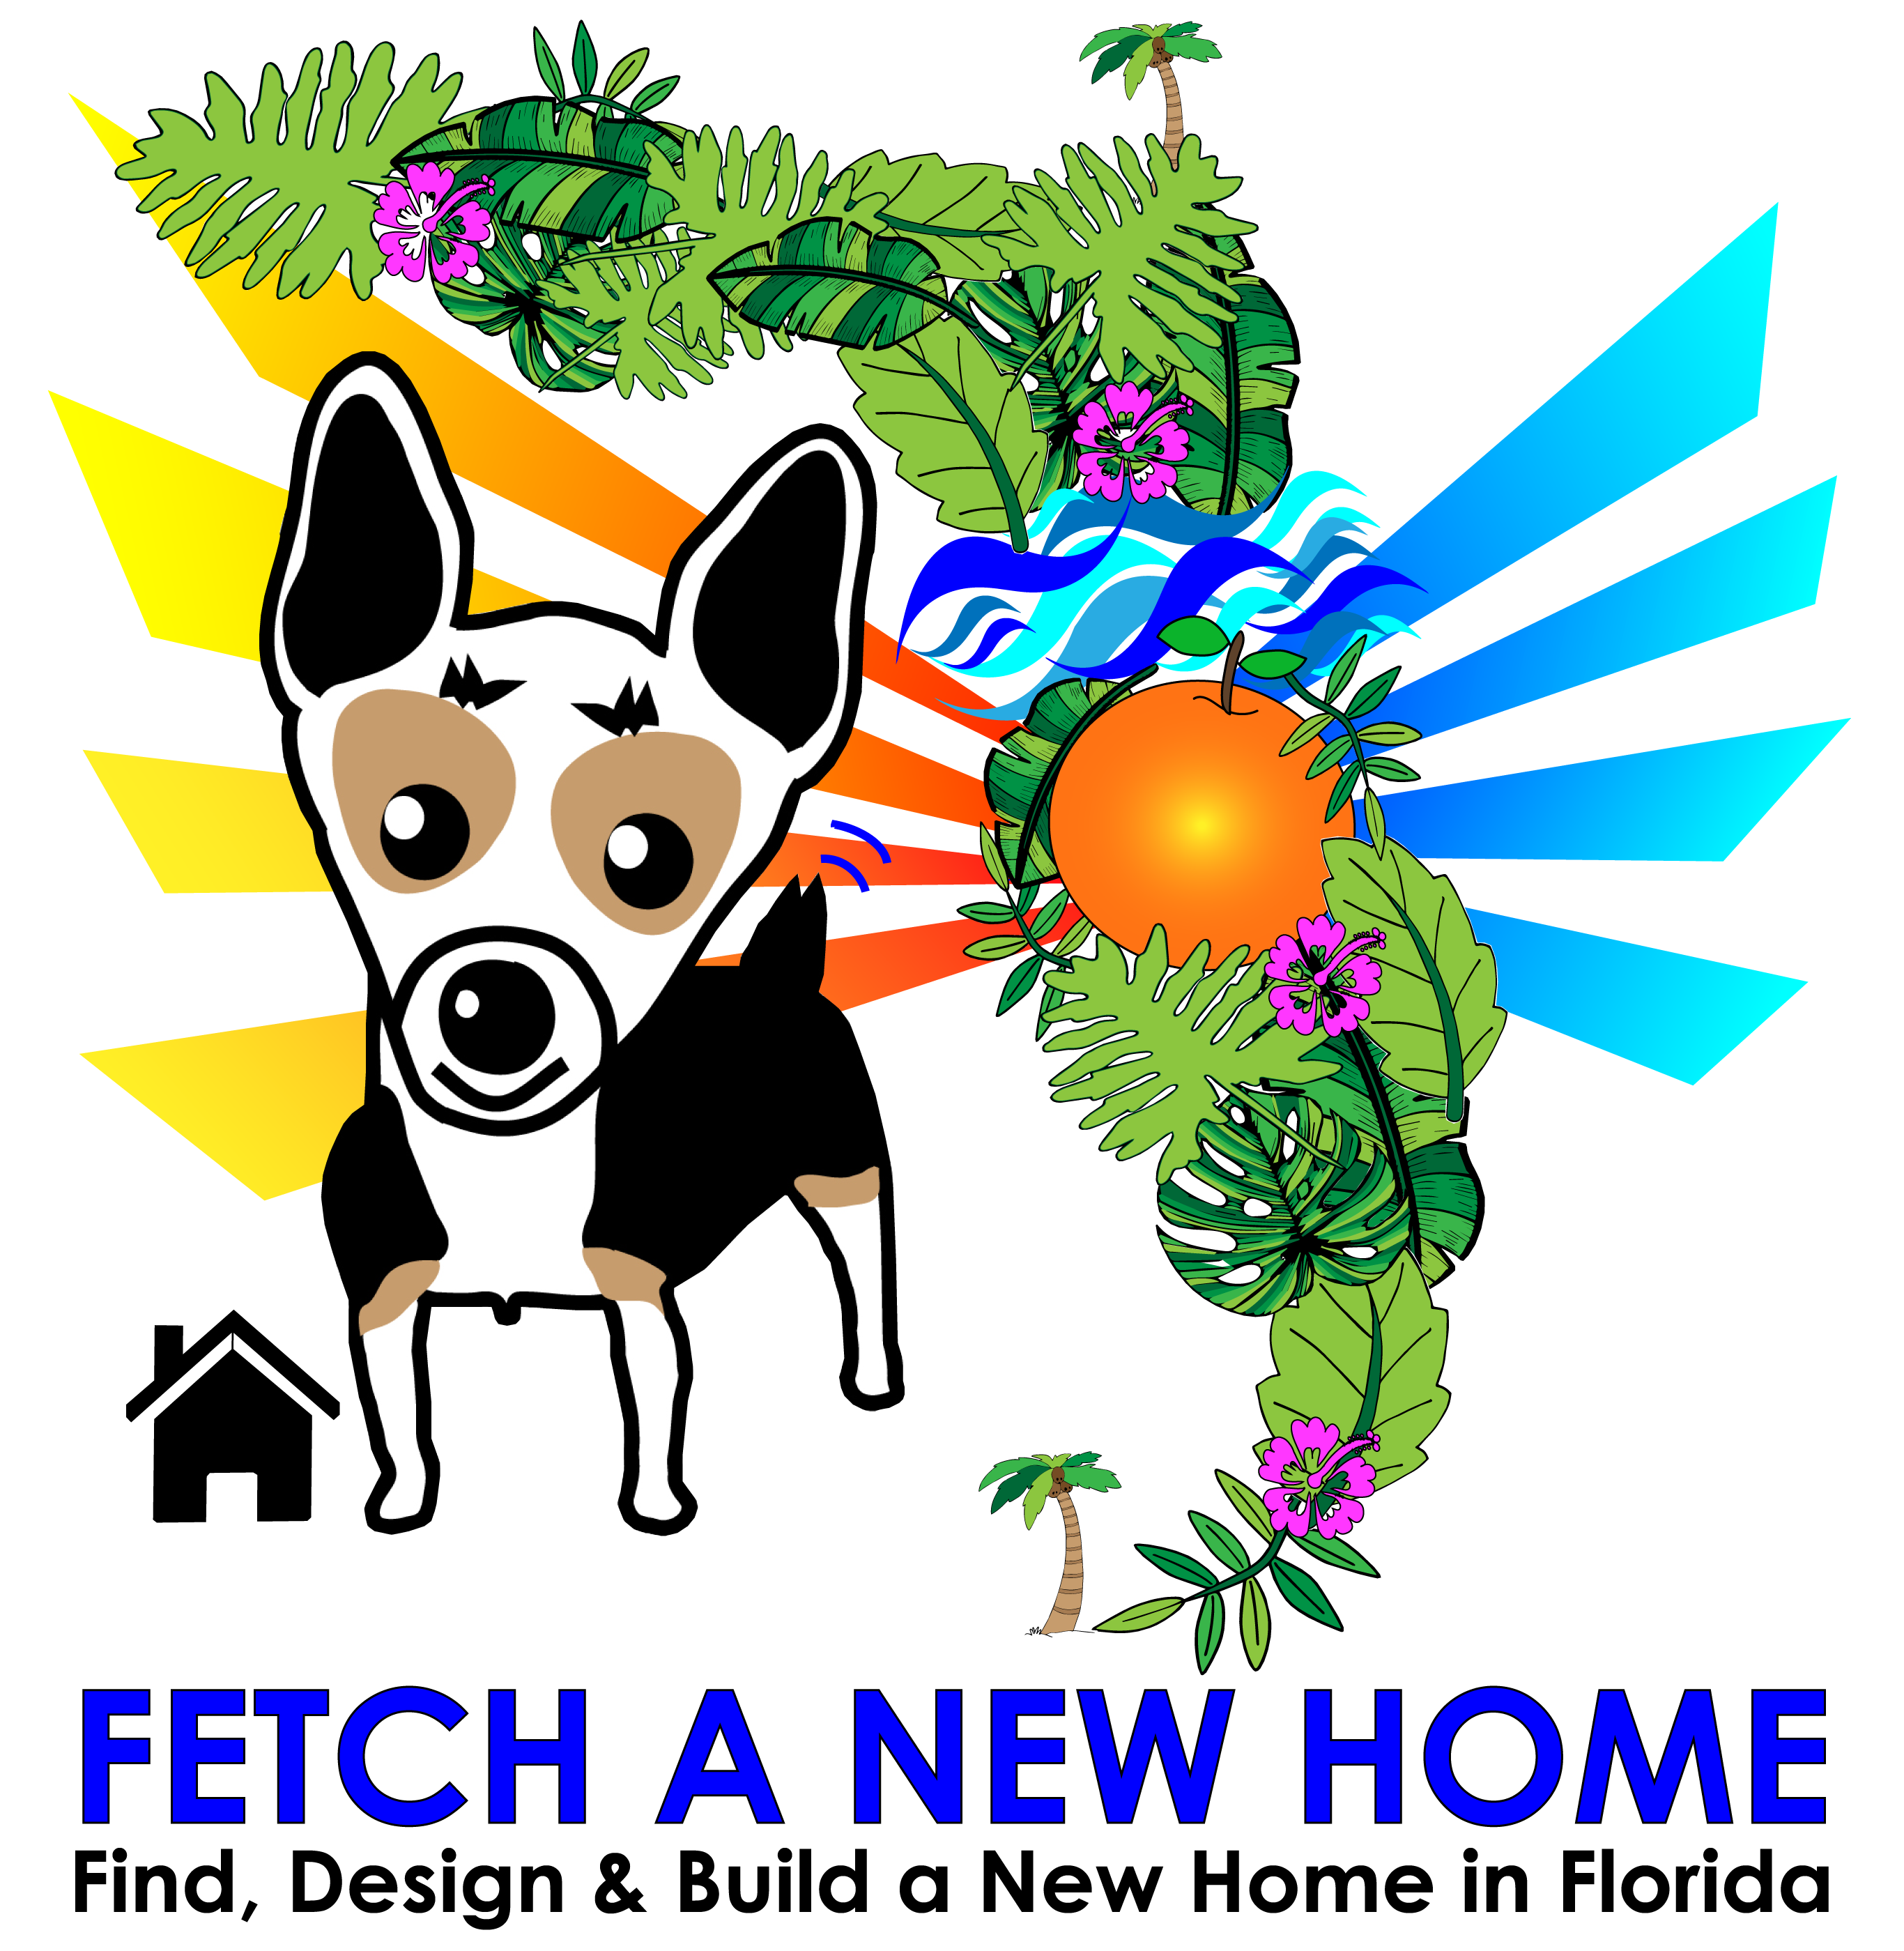 FETCH A NEW HOME | Find, Design & Build a New Home in Florida